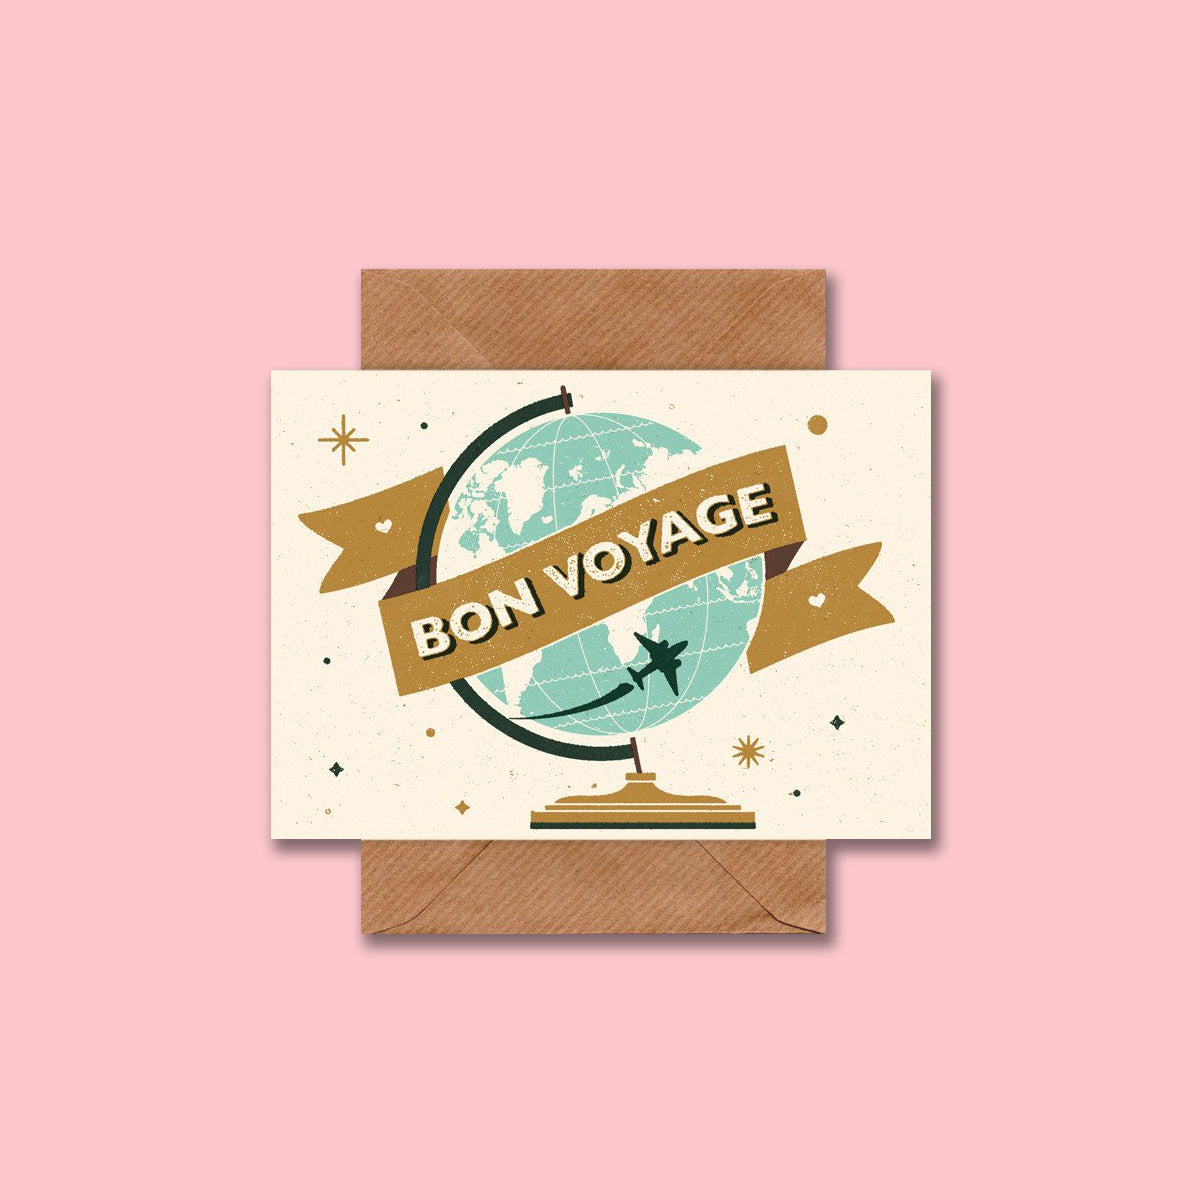 Retro Bon Voyage Card by Telegramme